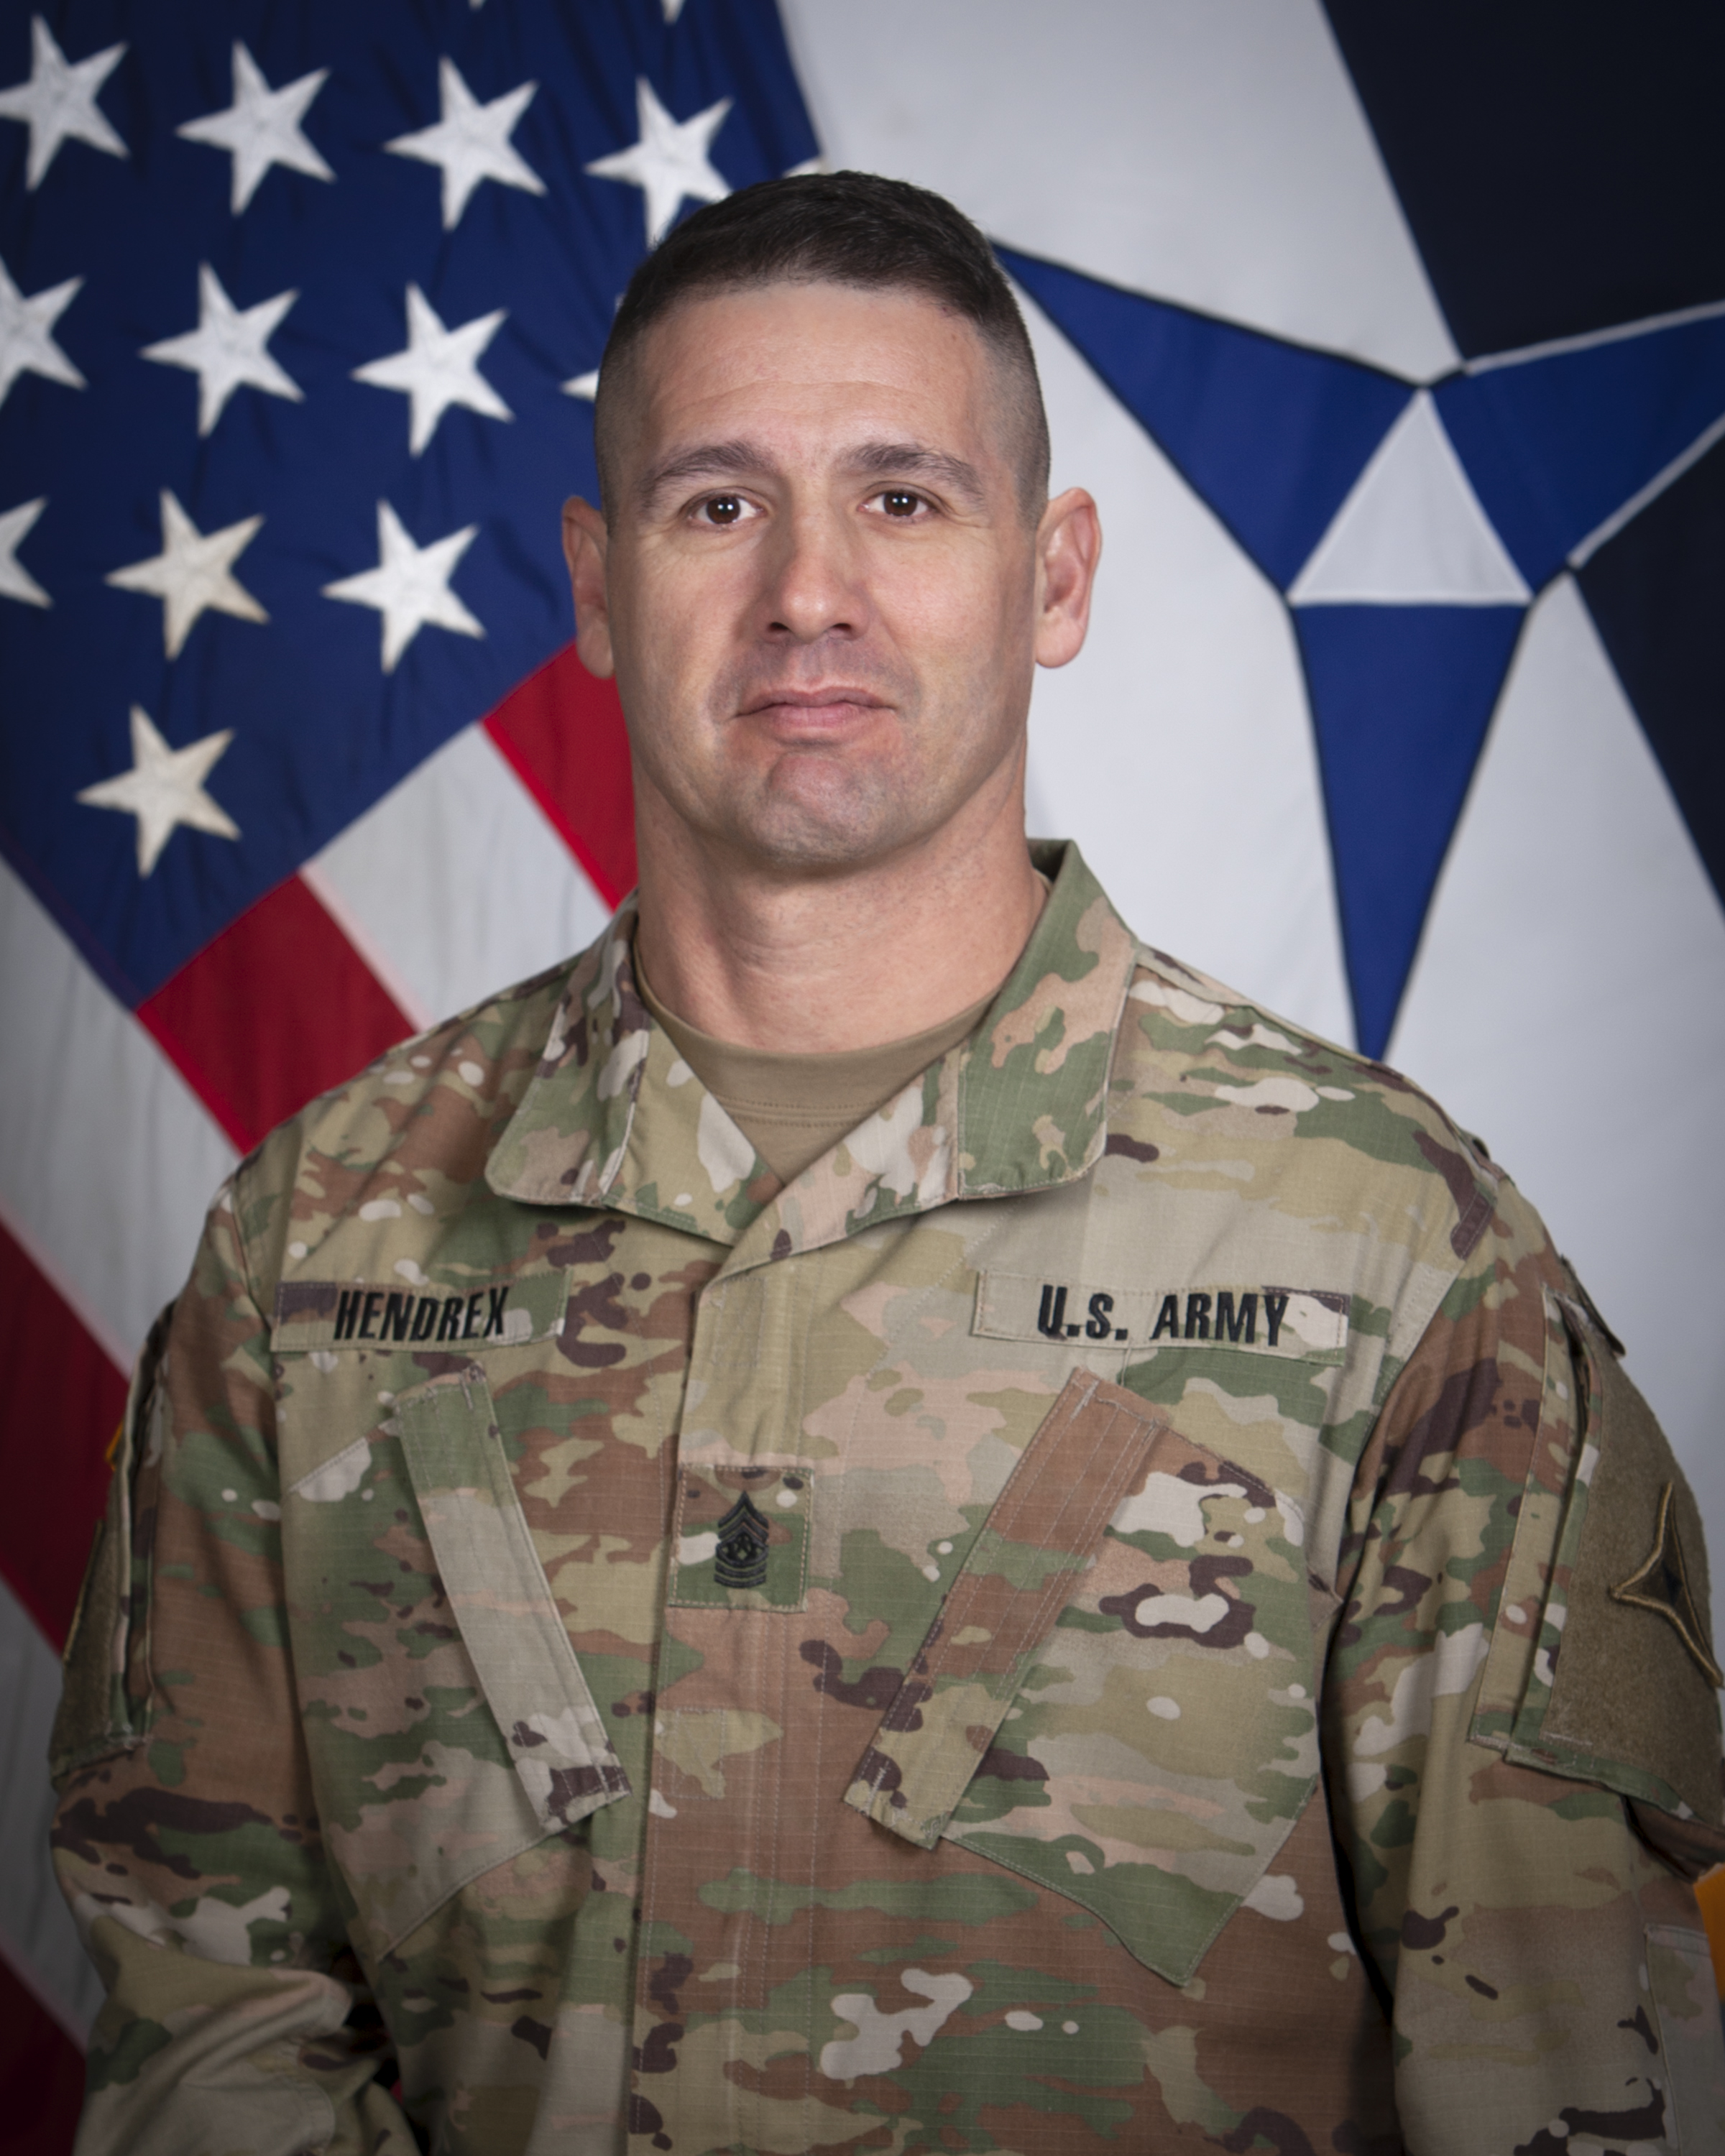 III Corps welcomes new command sergeant major – Fort Hood Press Center